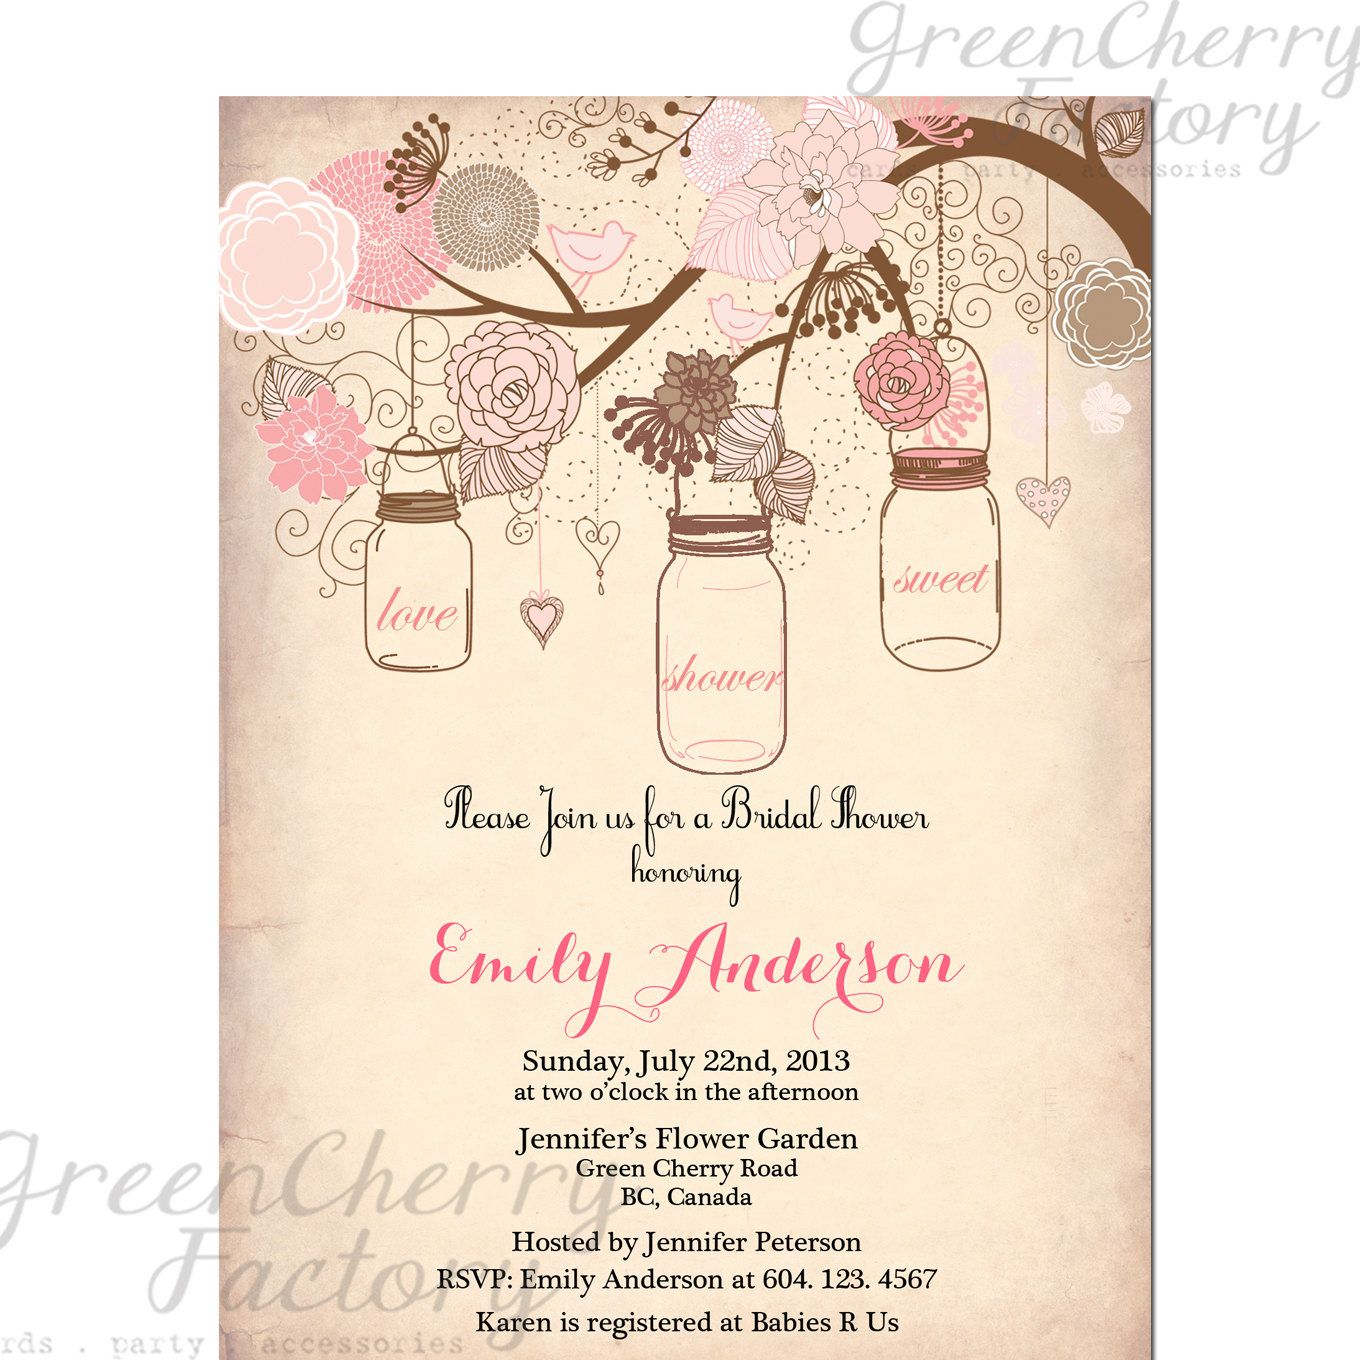 Mason Jar Invitation Rustic Bridal Shower Invitation Vintage Peach Backgr Bridal Shower Invitations Diy Bridal Shower Invitations Free Bridal Shower Rustic